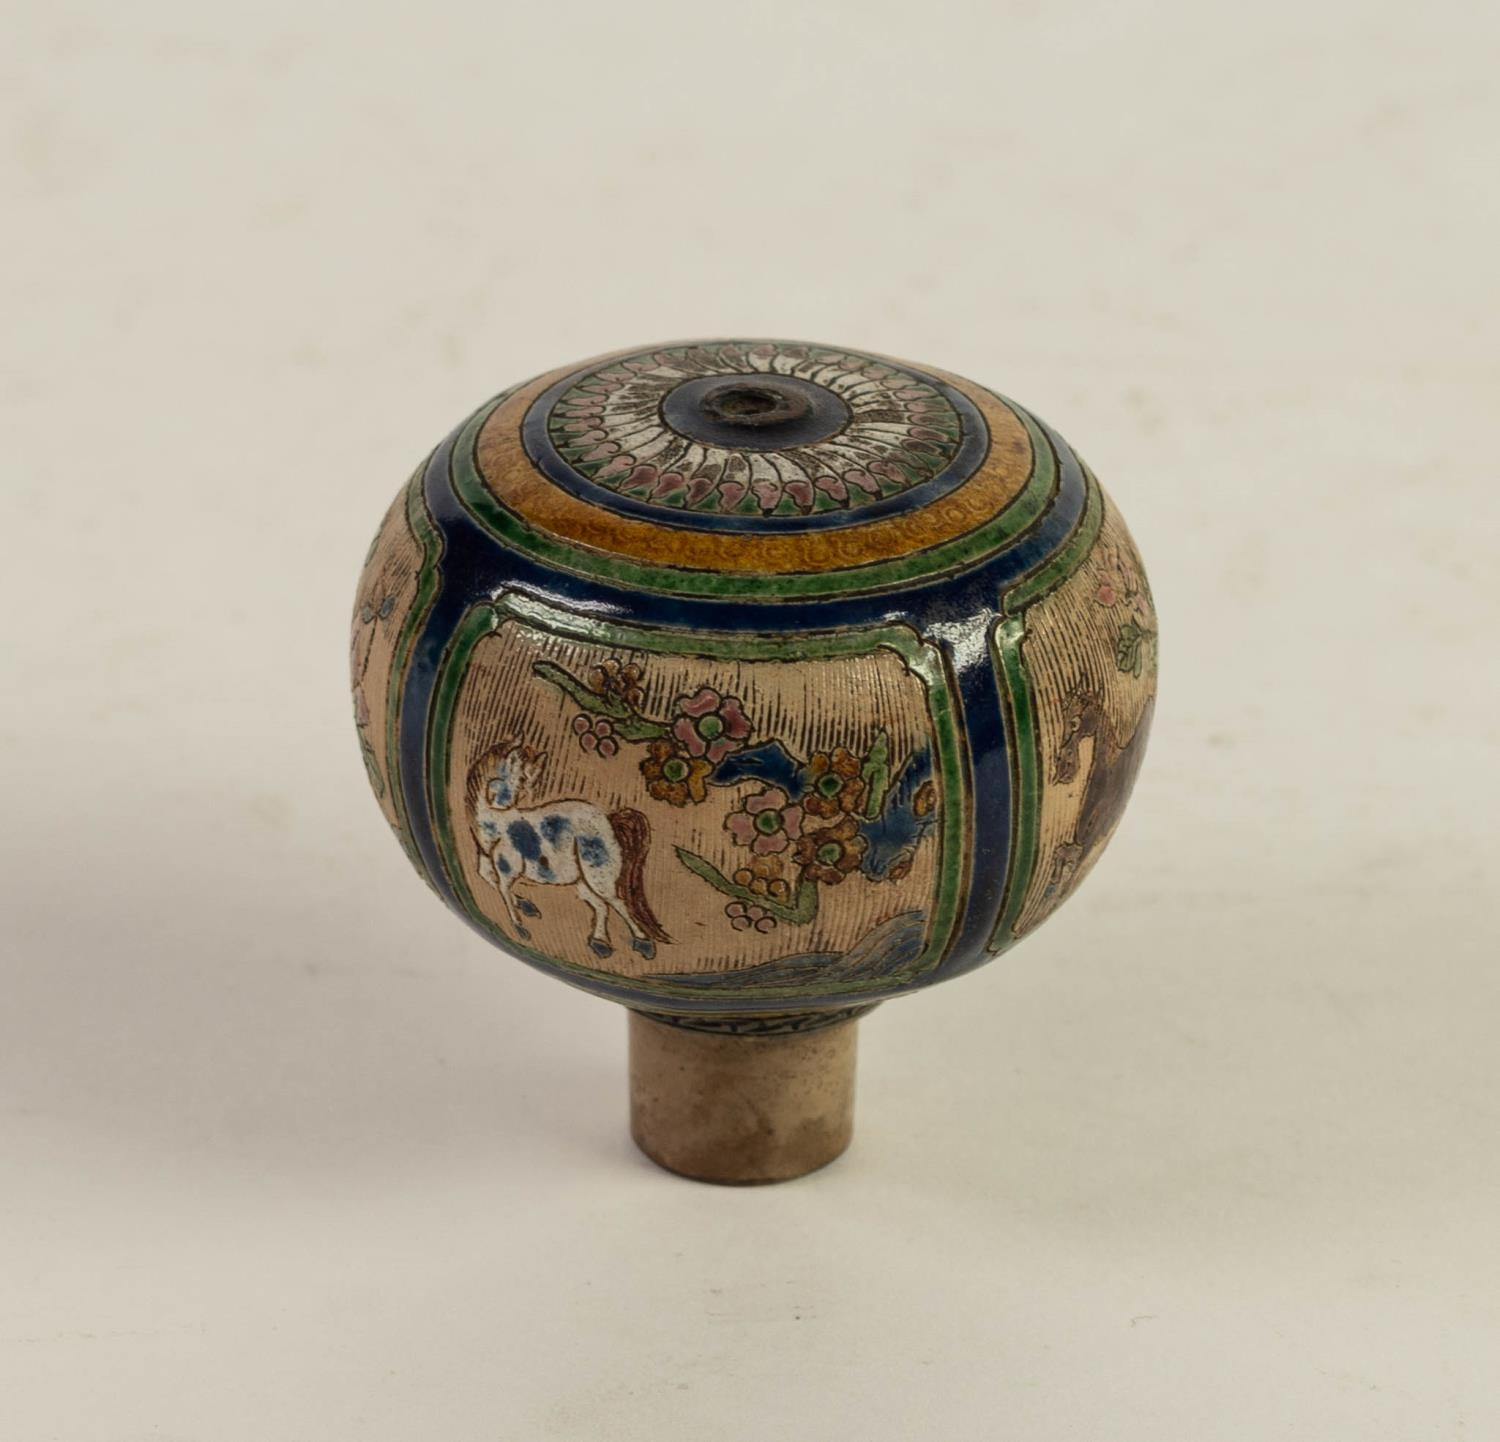 CHINESE QING DYNASTY PORCELANEOUS ORBICULAR KNOB OR FINIAL, incised and enamelled with four panels - Image 2 of 6